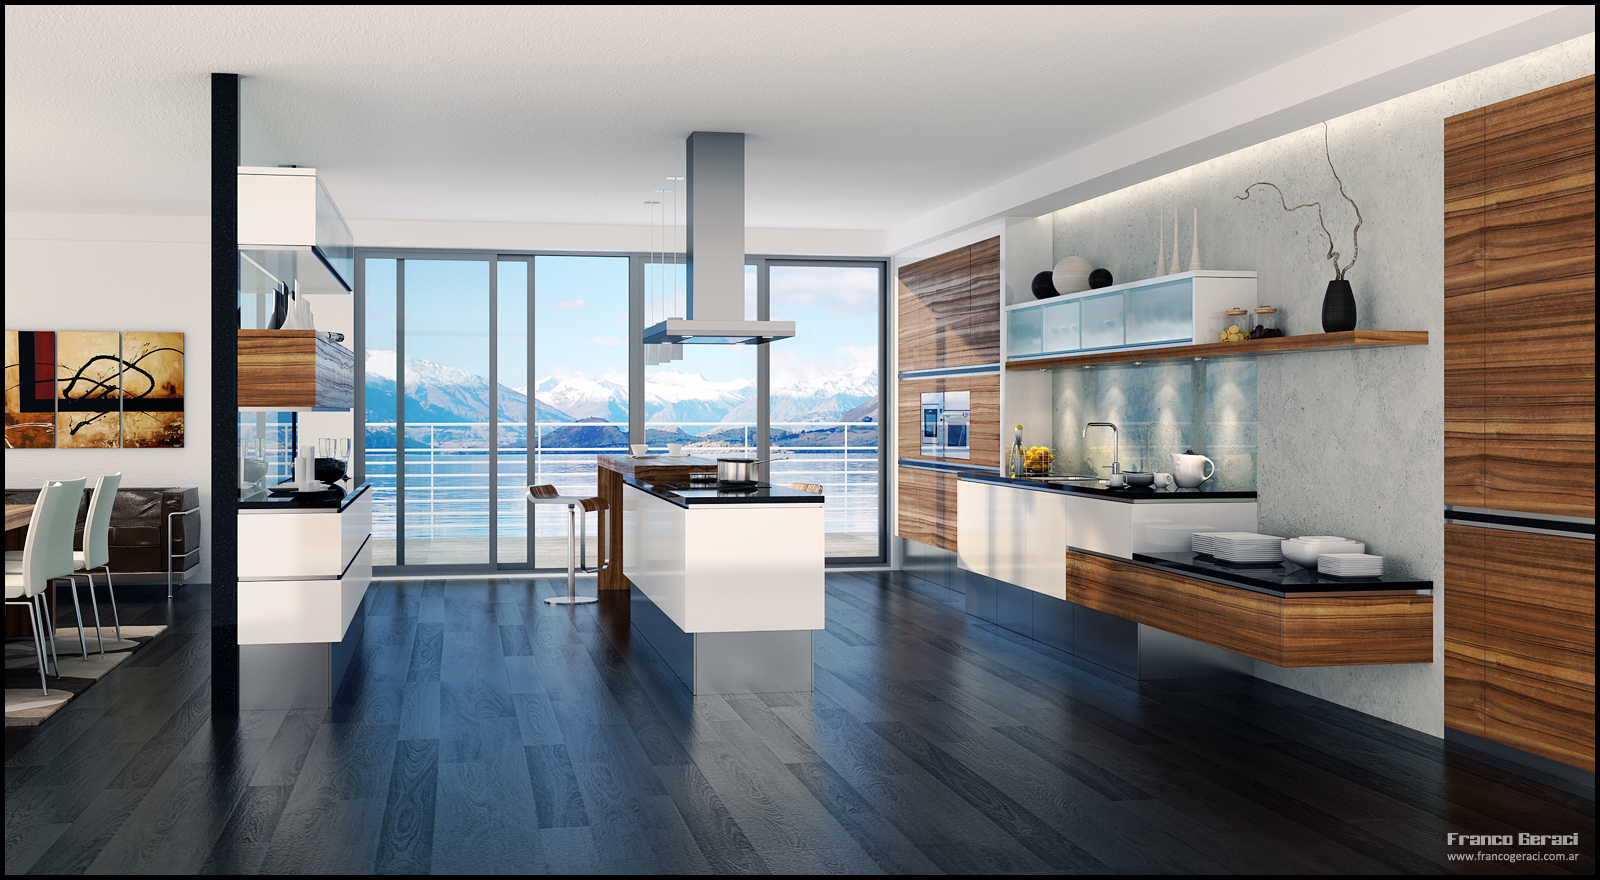 Modern Kitchen Designs | 1600 x 880 · 1013 kB · jpeg | 1600 x 880 · 1013 kB · jpeg